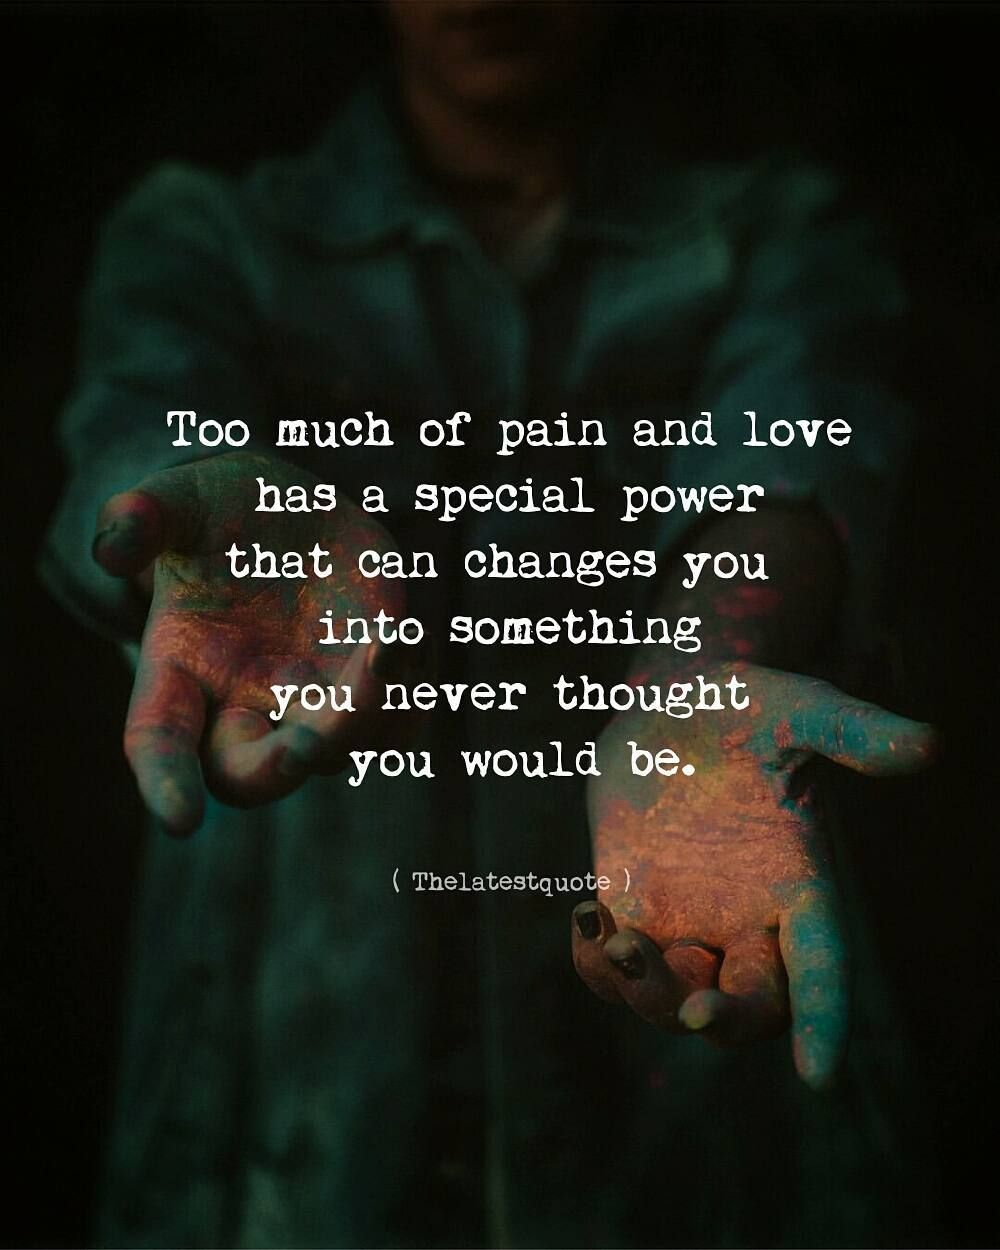 Too Much Of Pain And Love Has A Special Power That Can Changes You